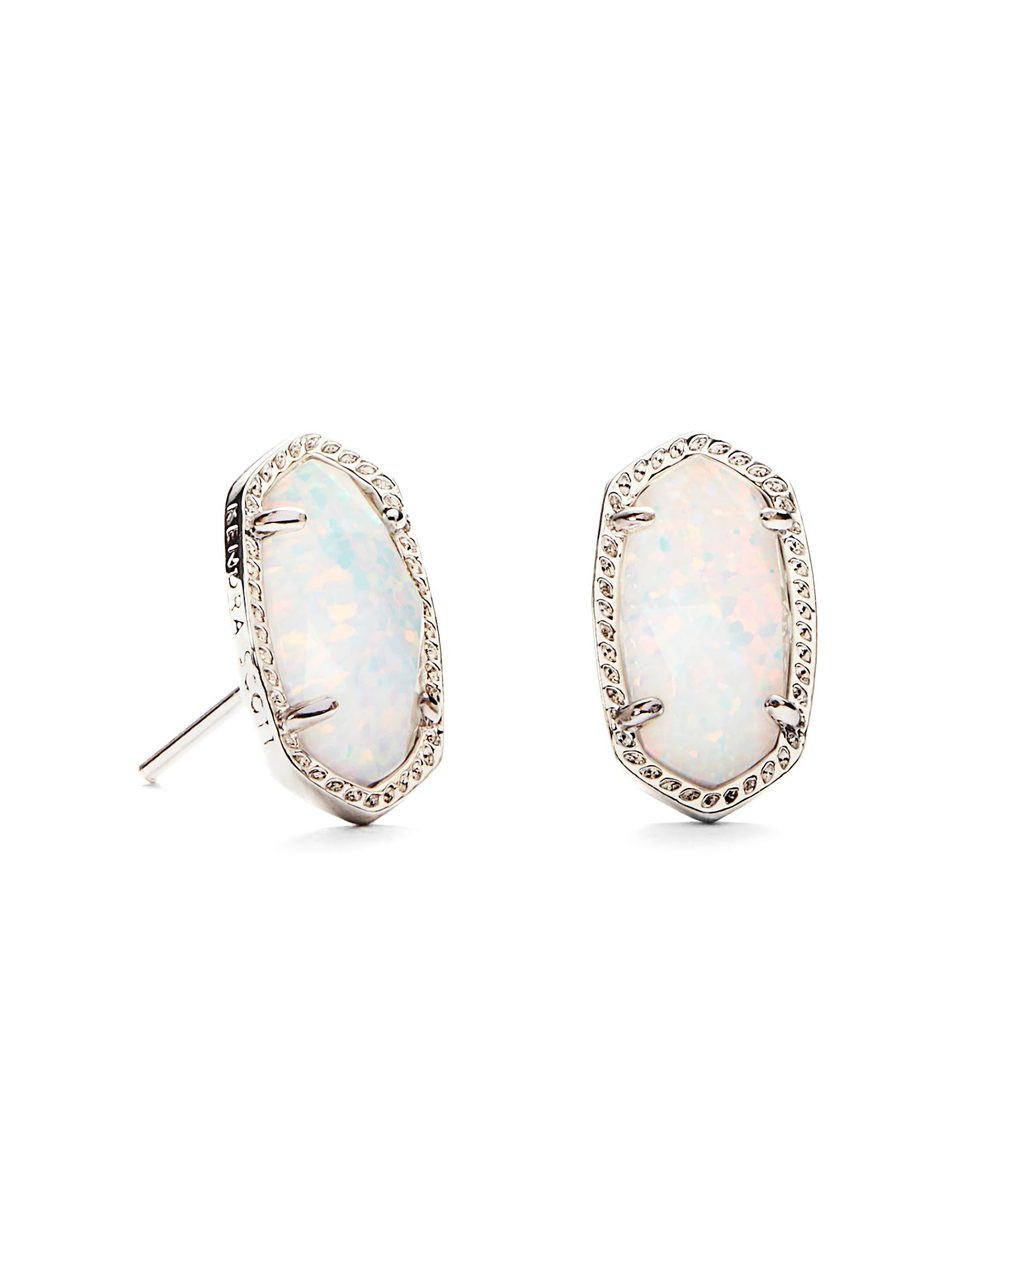 c0cbcab62af744 Kendra Scott Ellie Earring Rhodium/White Kyocera Opal. Price: $95.00. Image  1